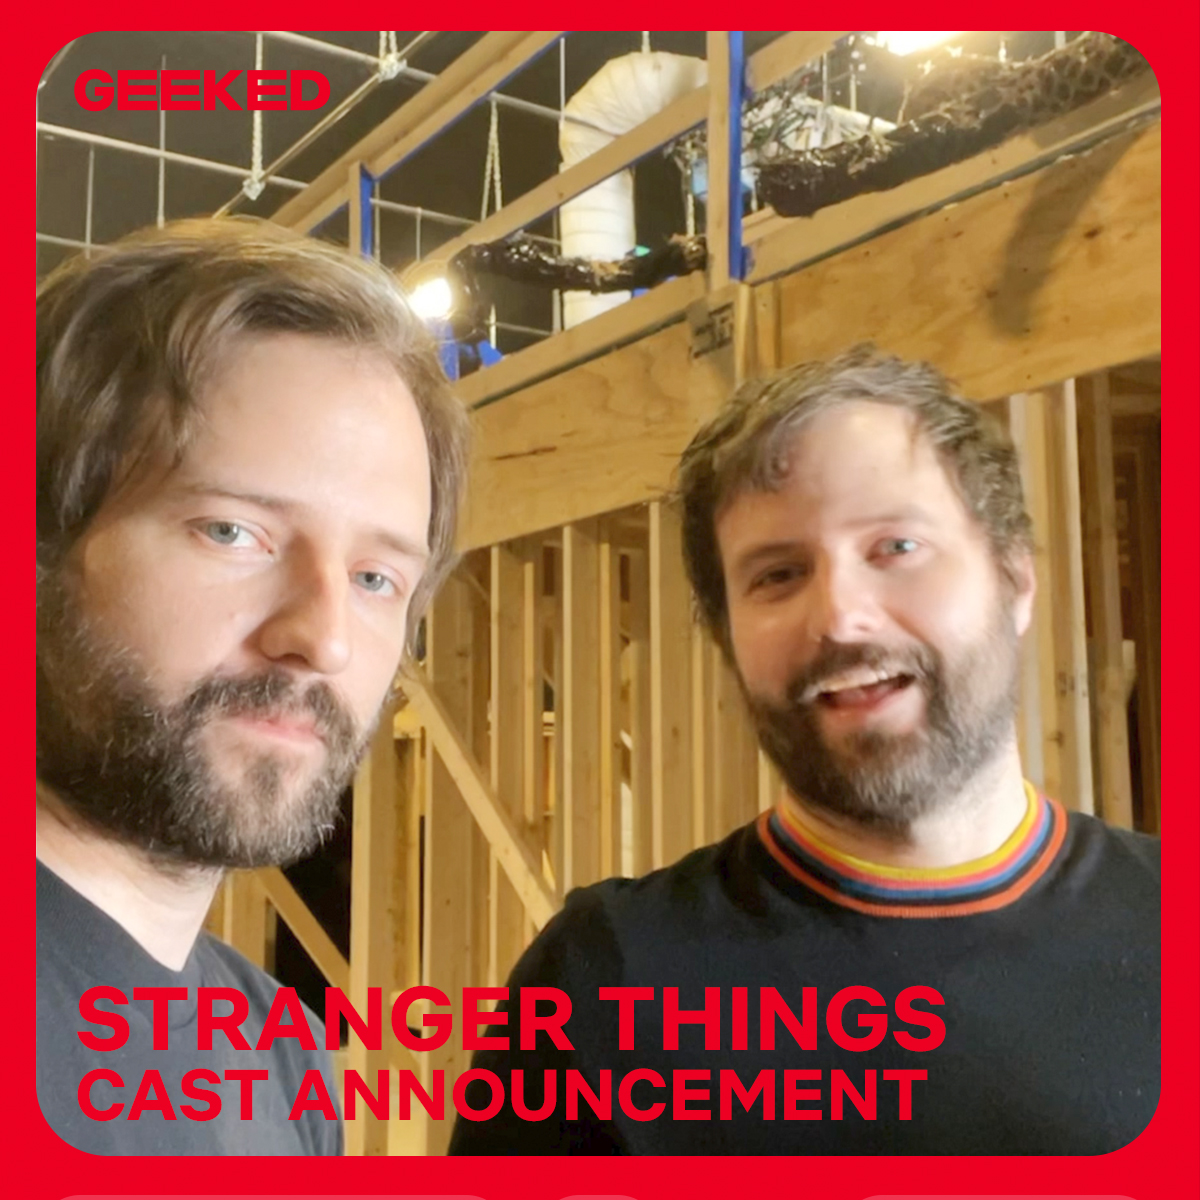 all aboard! the Duffer Brothers are here with special news that they want to personally share with you. @stranger_things #GeekedWeek https://t.co/TVheNMqgUl